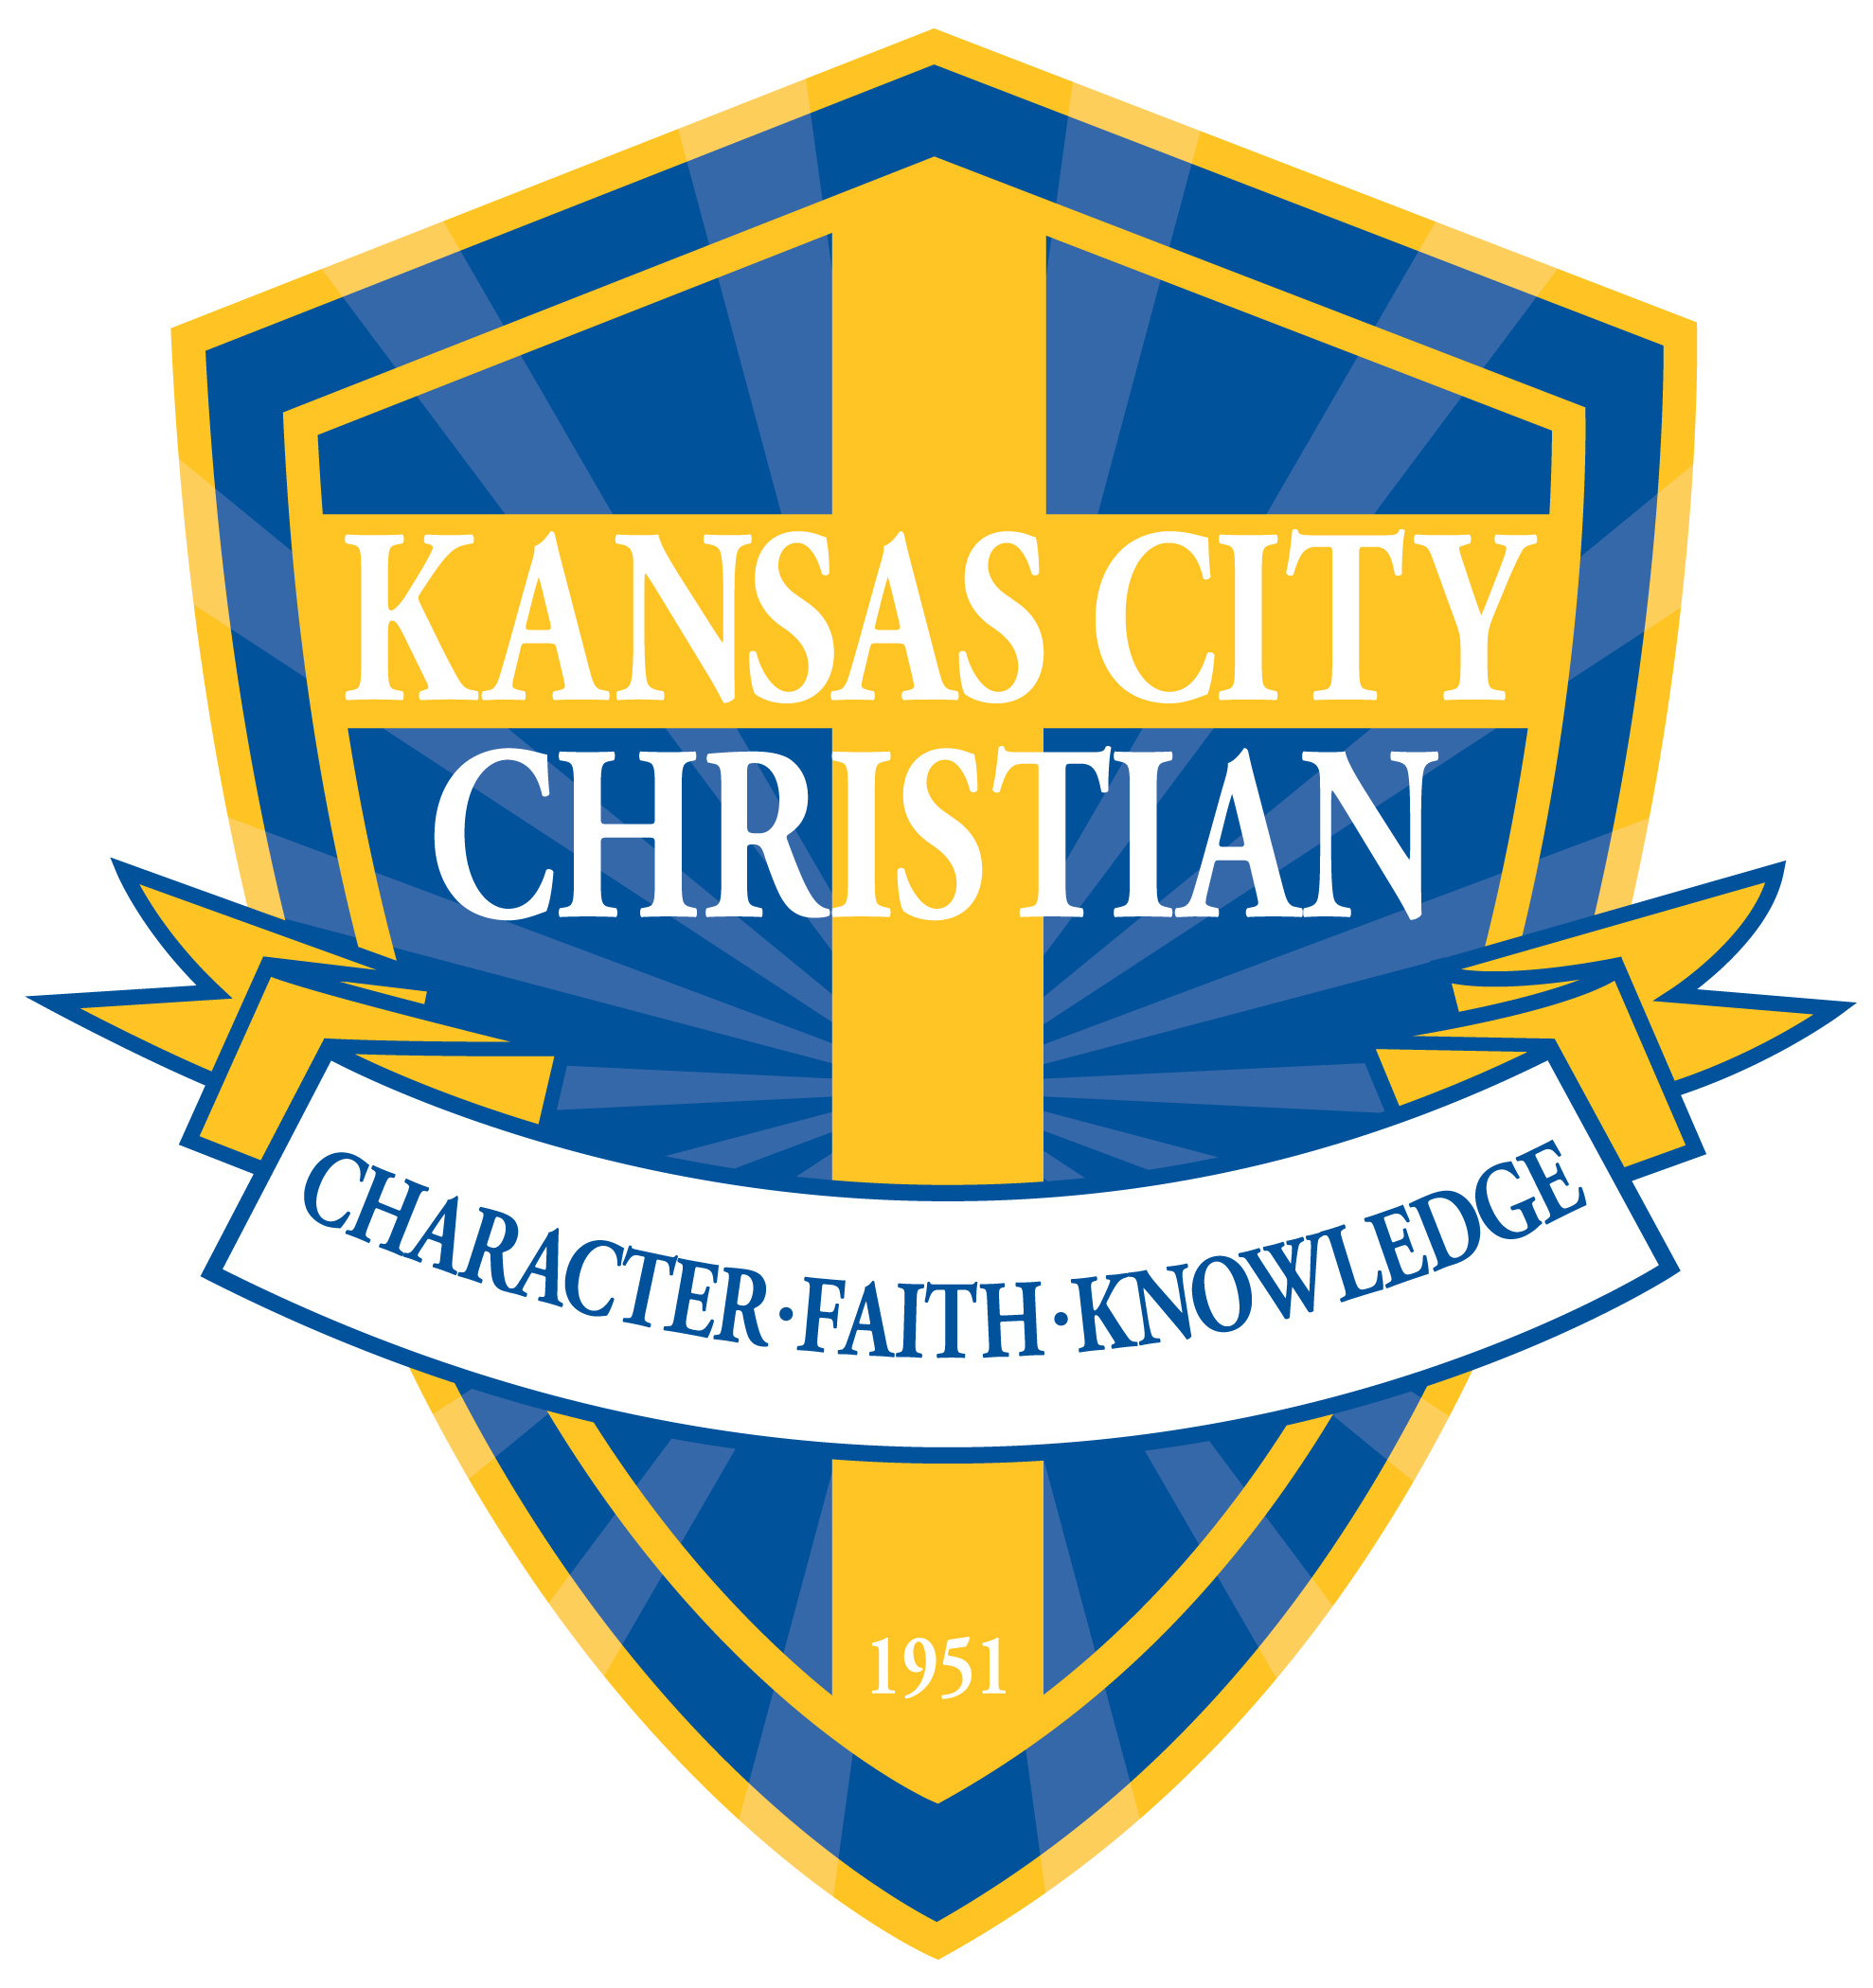 THE KCC LOGO